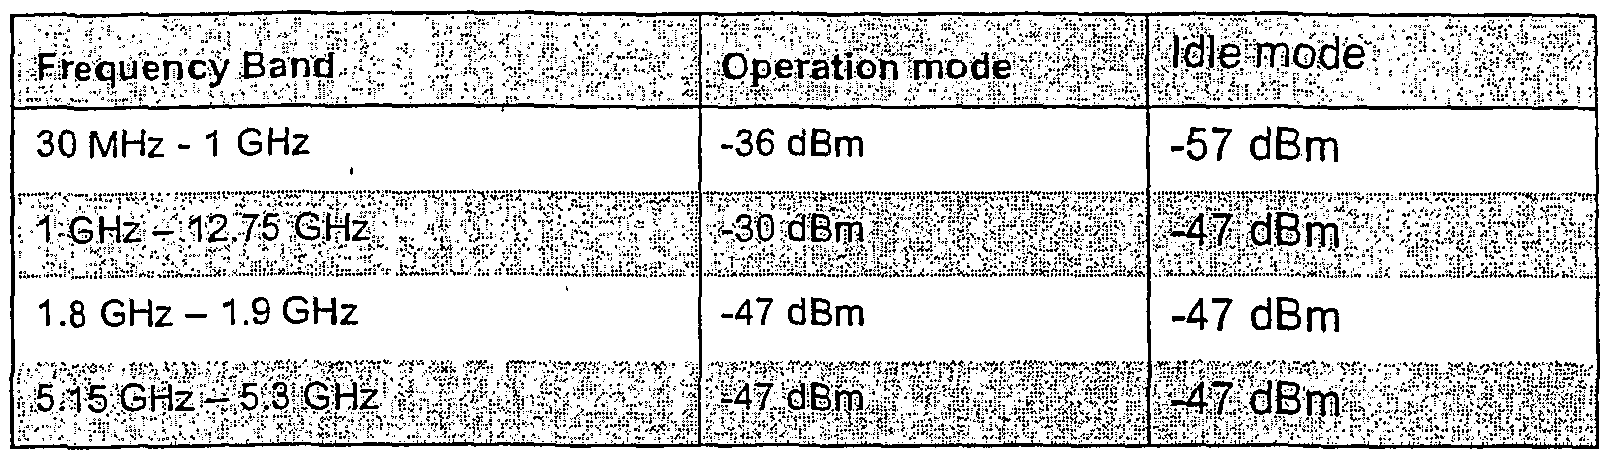 WO2002089496A2 - Eyewear with exchangeable temples housing